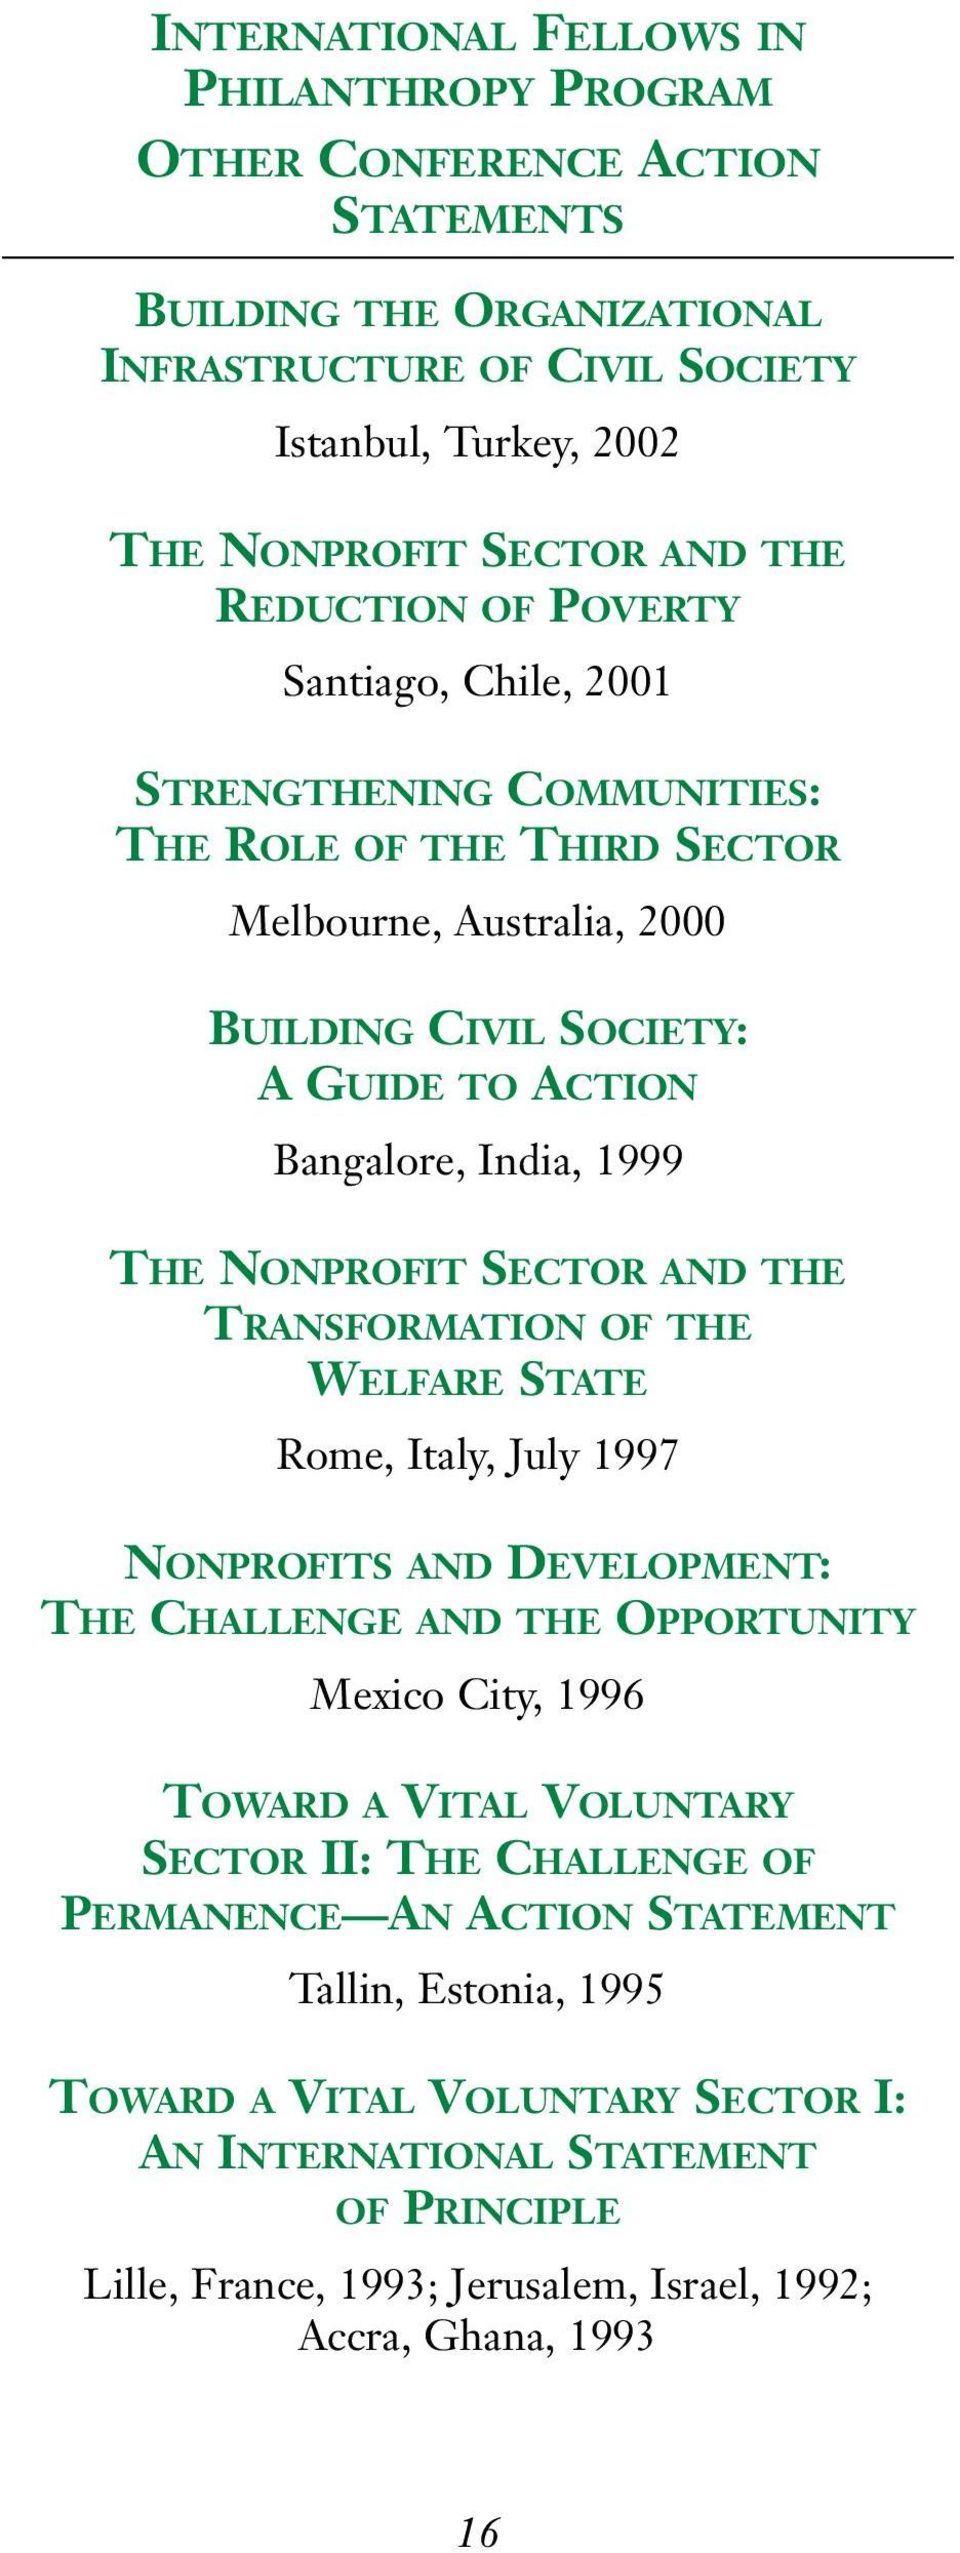 NONPROFIT SECTOR AND THE TRANSFORMATION OF THE WELFARE STATE Rome, Italy, July 1997 NONPROFITS AND DEVELOPMENT: THE CHALLENGE AND THE OPPORTUNITY Mexico City, 1996 TOWARD A VITAL VOLUNTARY SECTOR II: